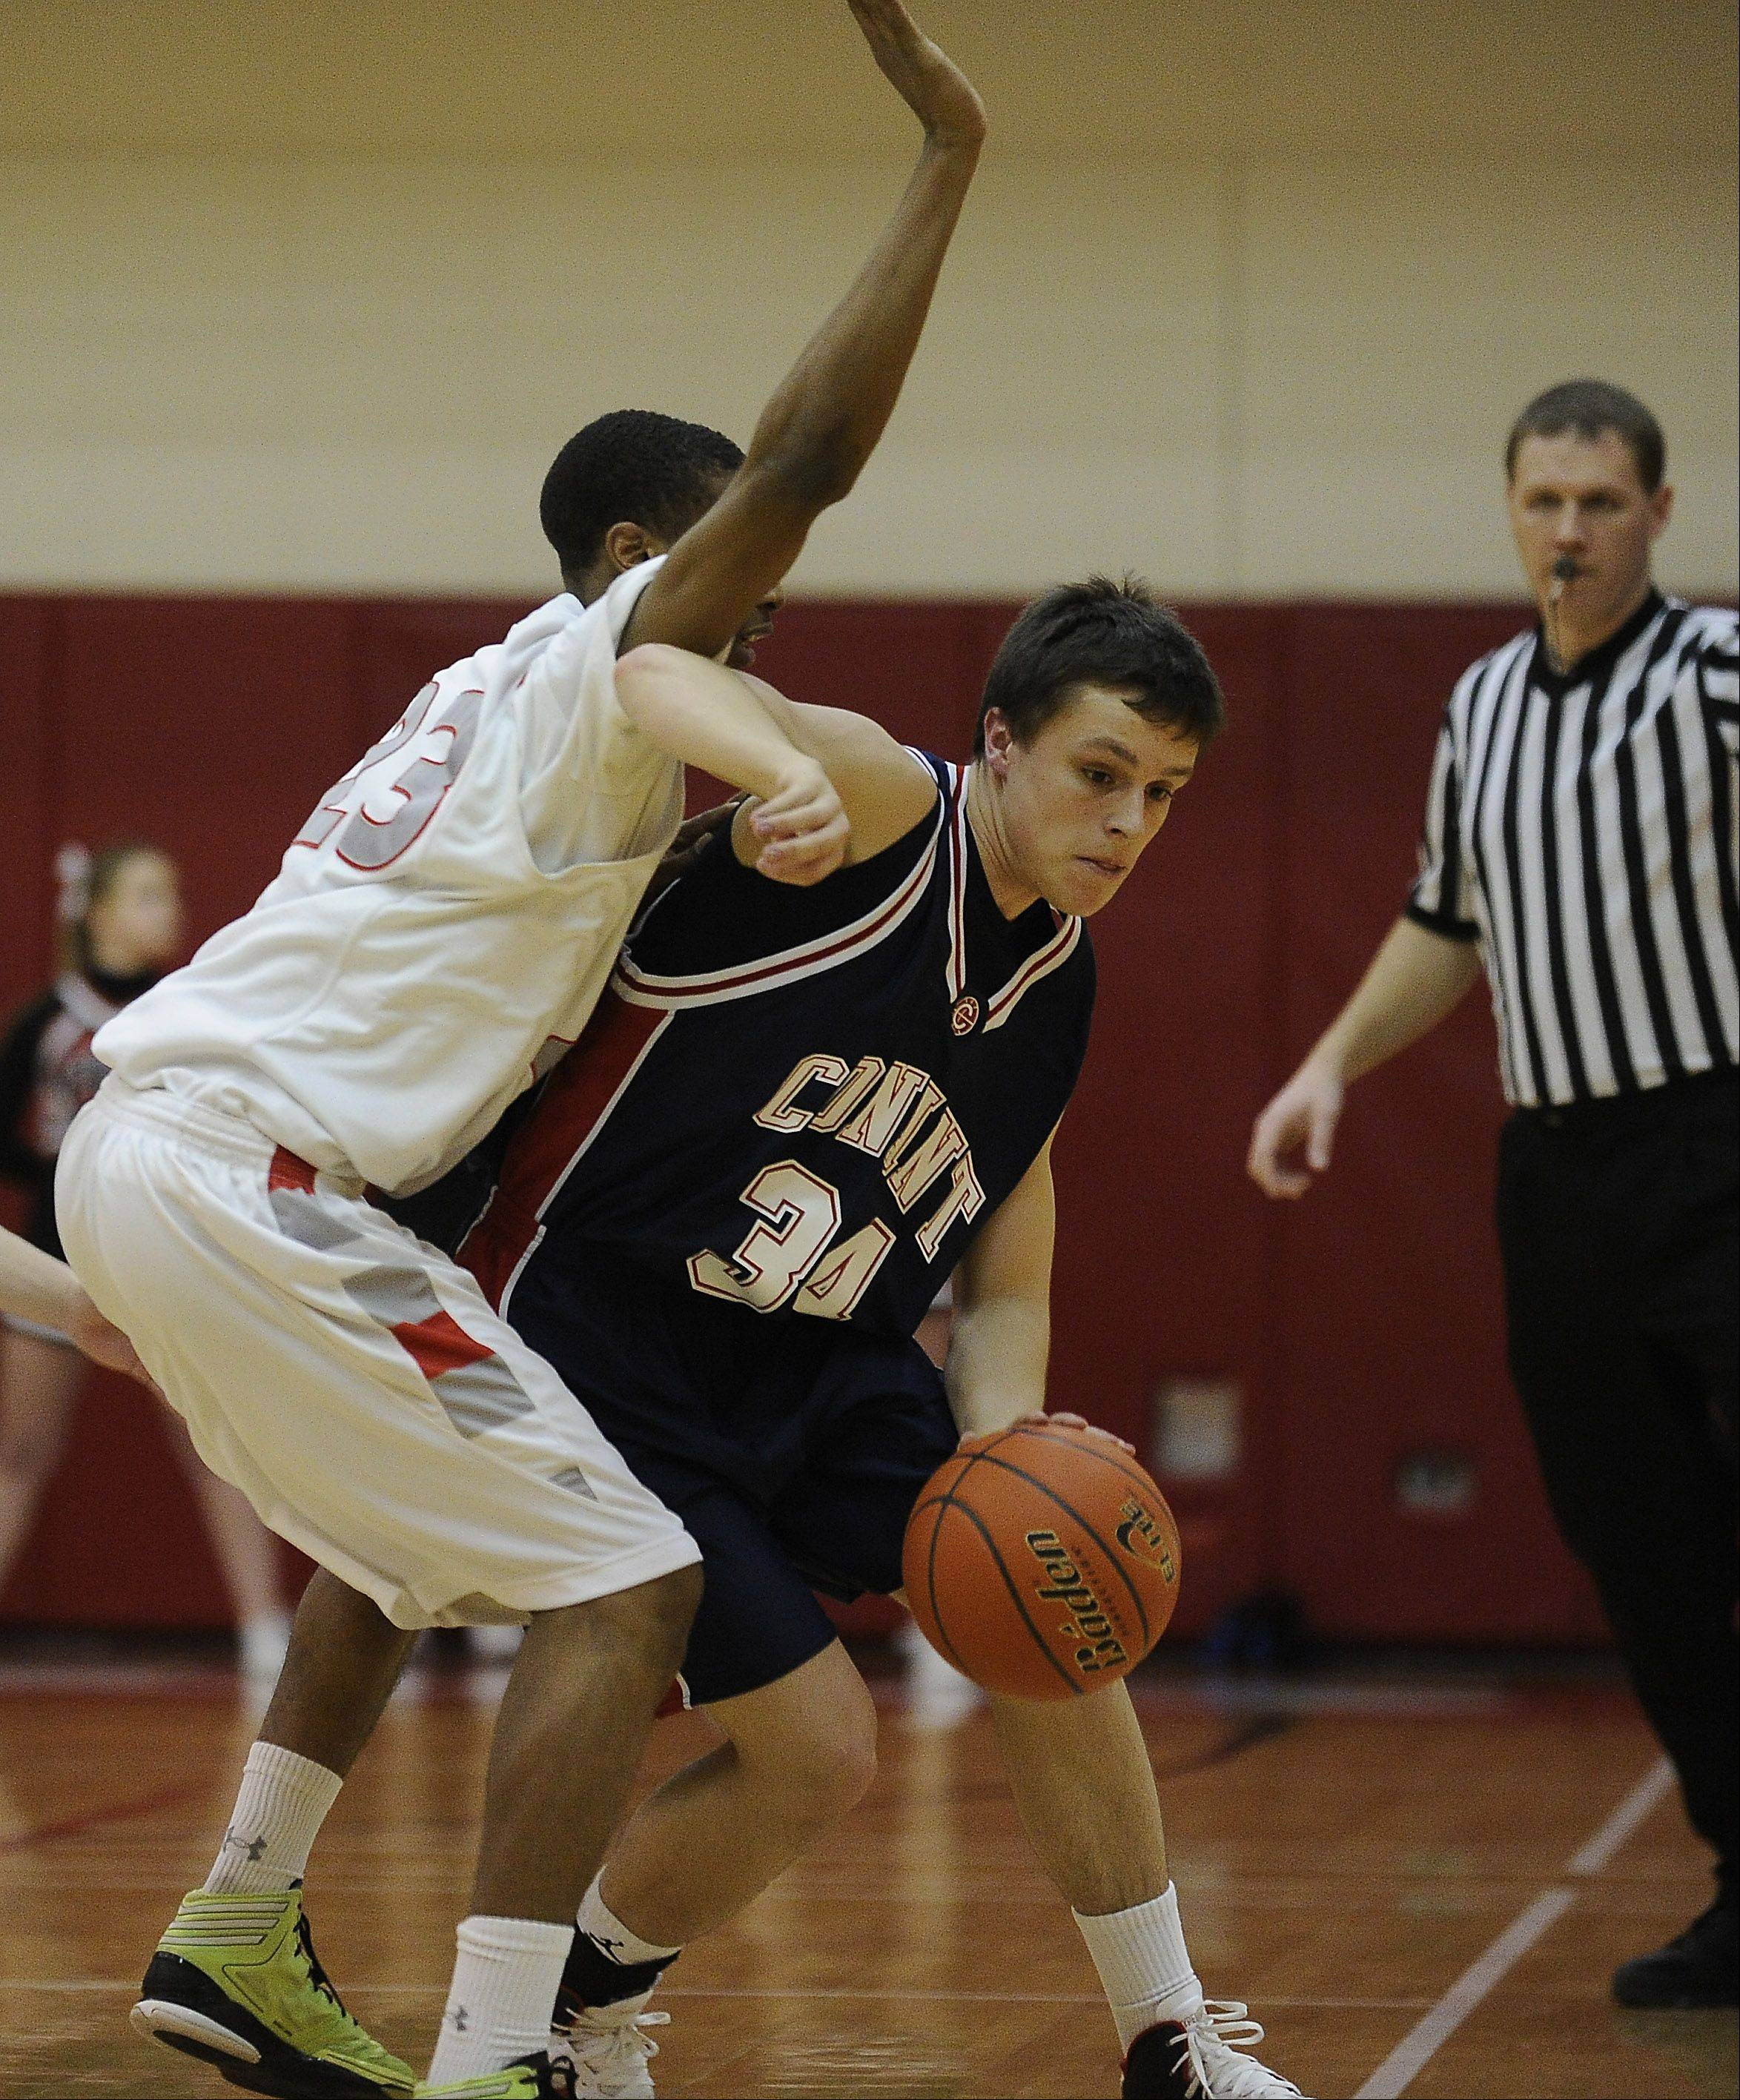 Conant's Mark Monti drives past Palatine's Roosevelt Smart in the first half of MSL West play Thursday at Palatine.